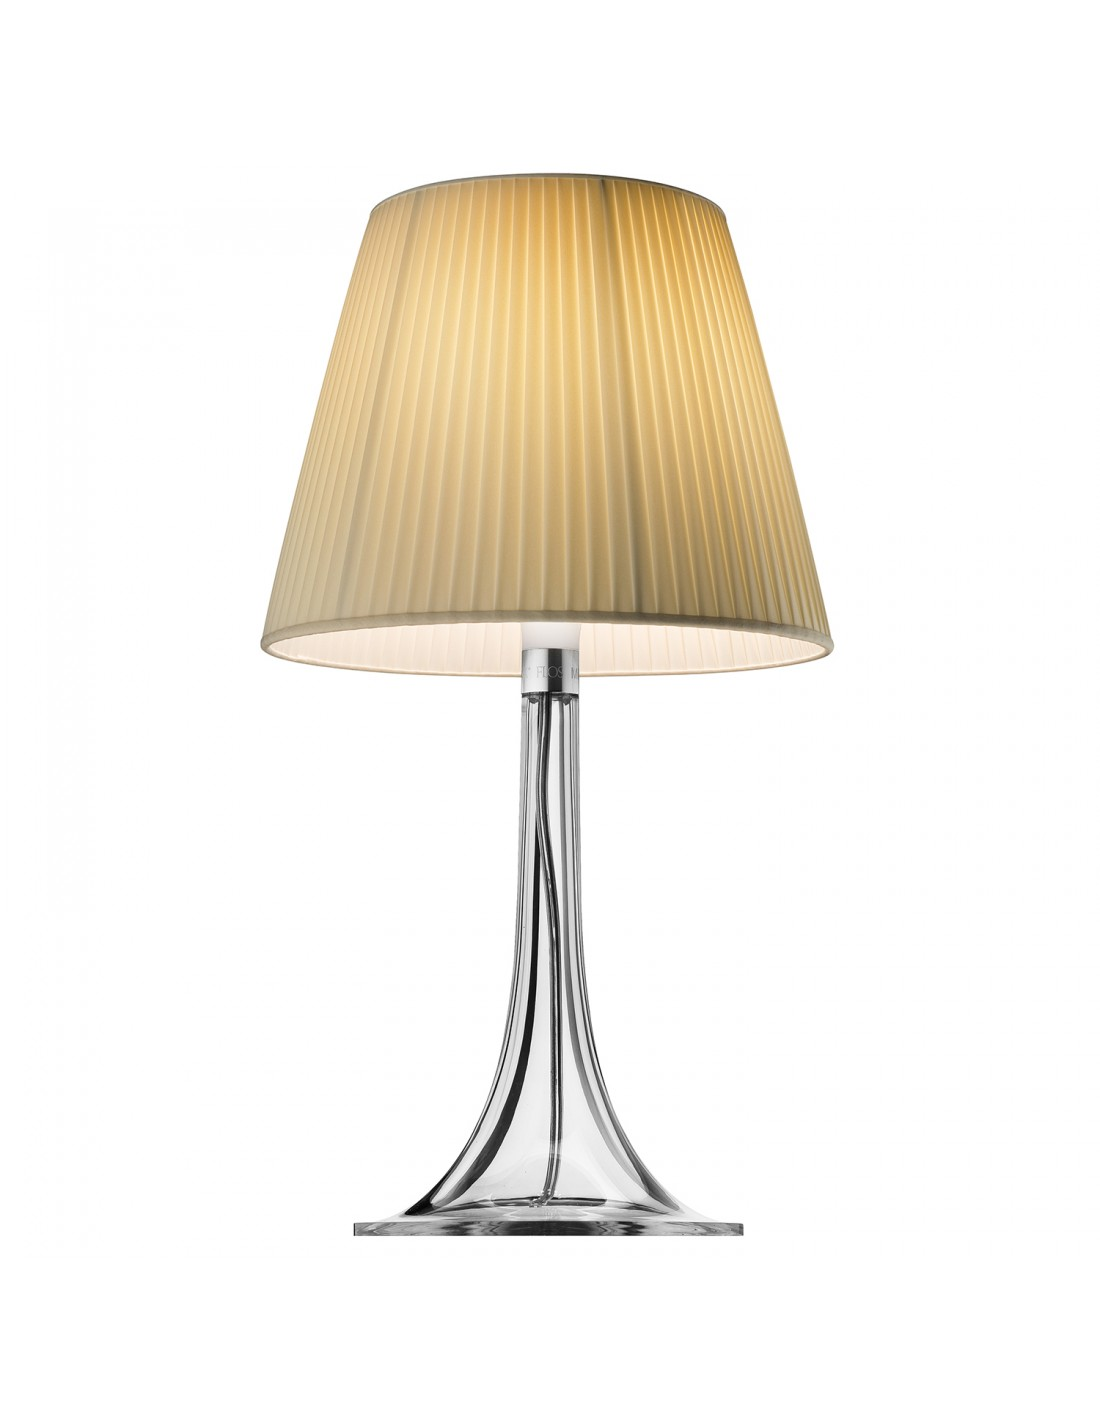 Lampe de table miss k tissus de flos for Lampe de table rona